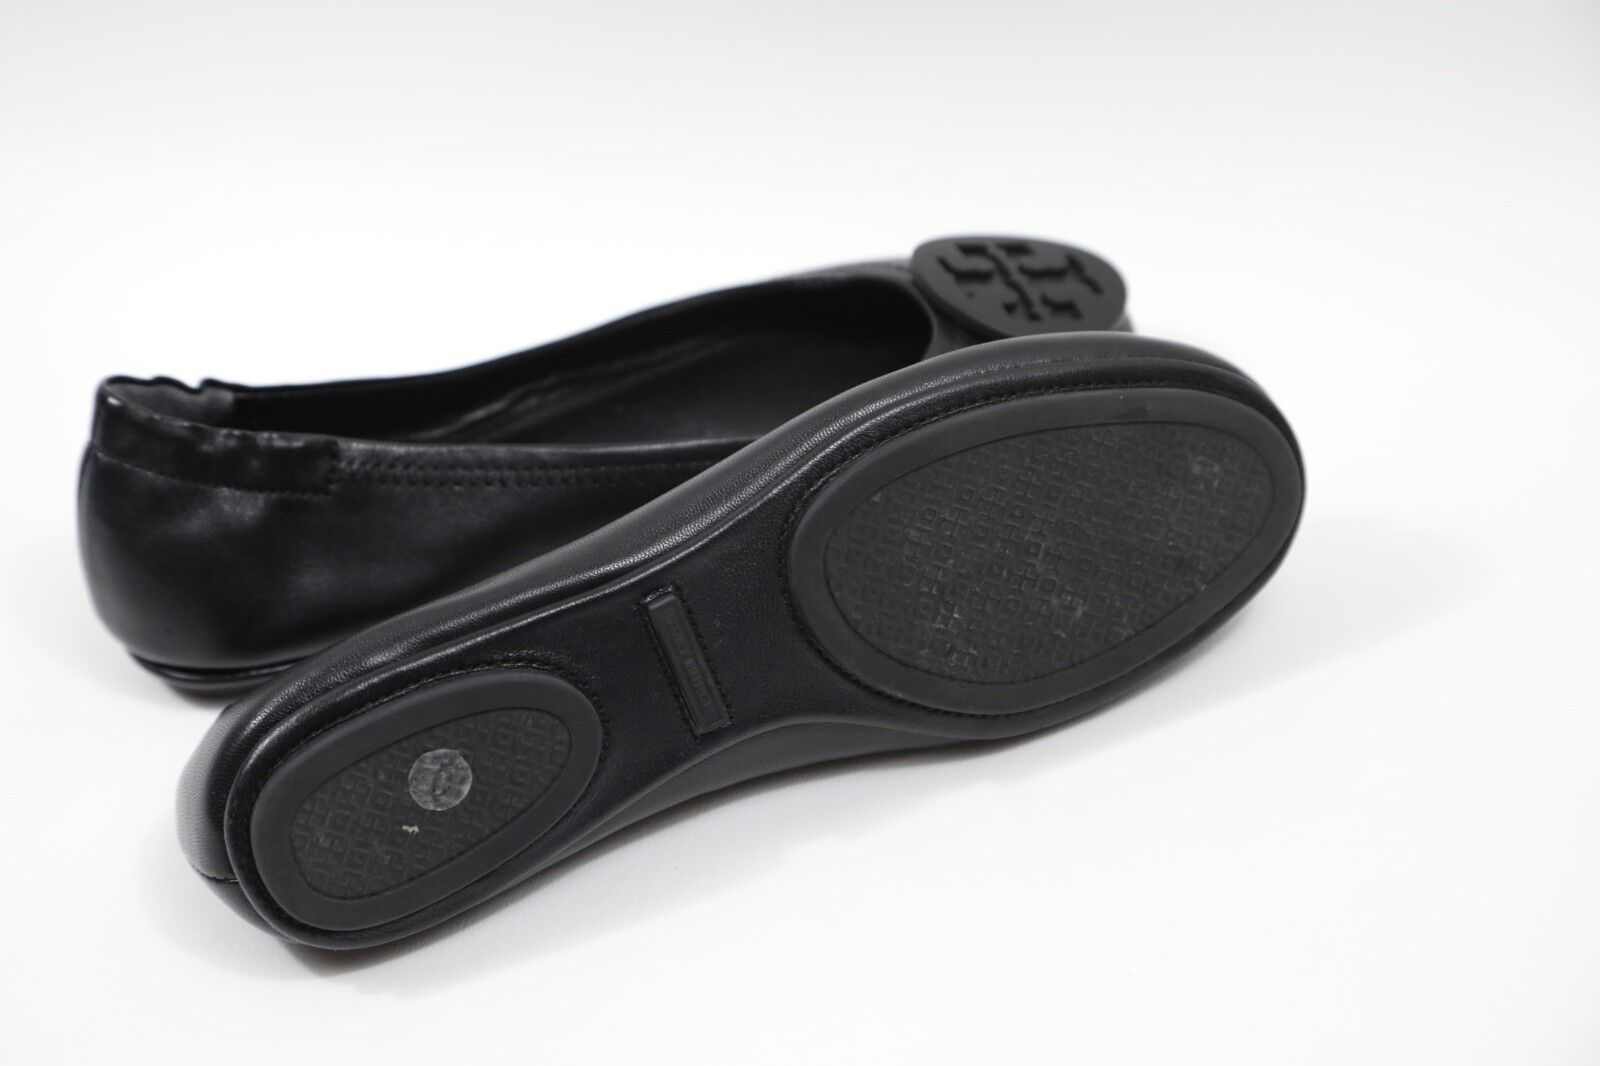 Tory Burch Minnie bLACK Travel Ballet Flats Dimensione 8 M    228 RETAIL dc5a5e